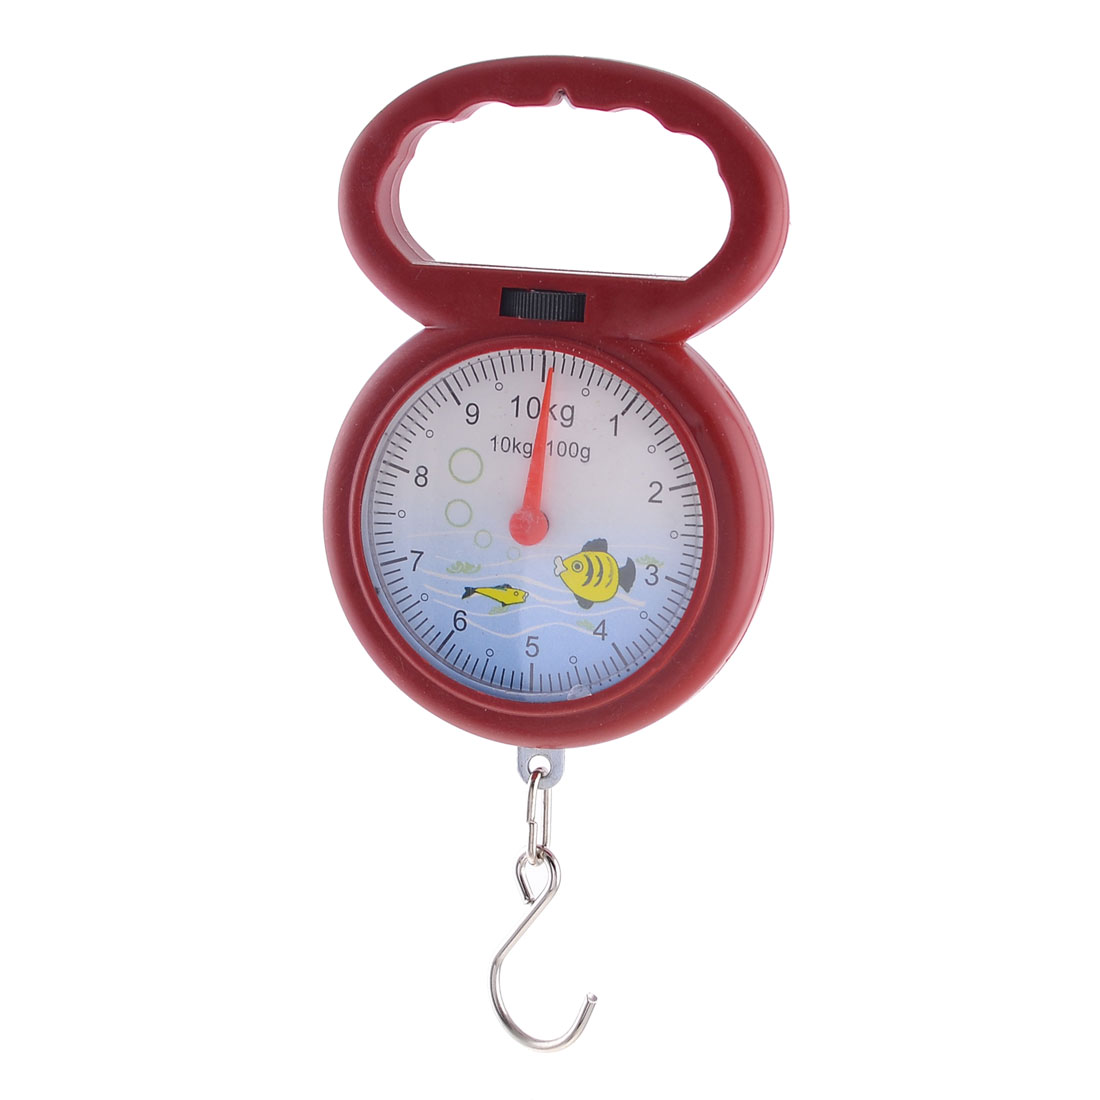 Red Plastic Housing Round Dial Weight Measurement Handheld Scale 10kg 22lb